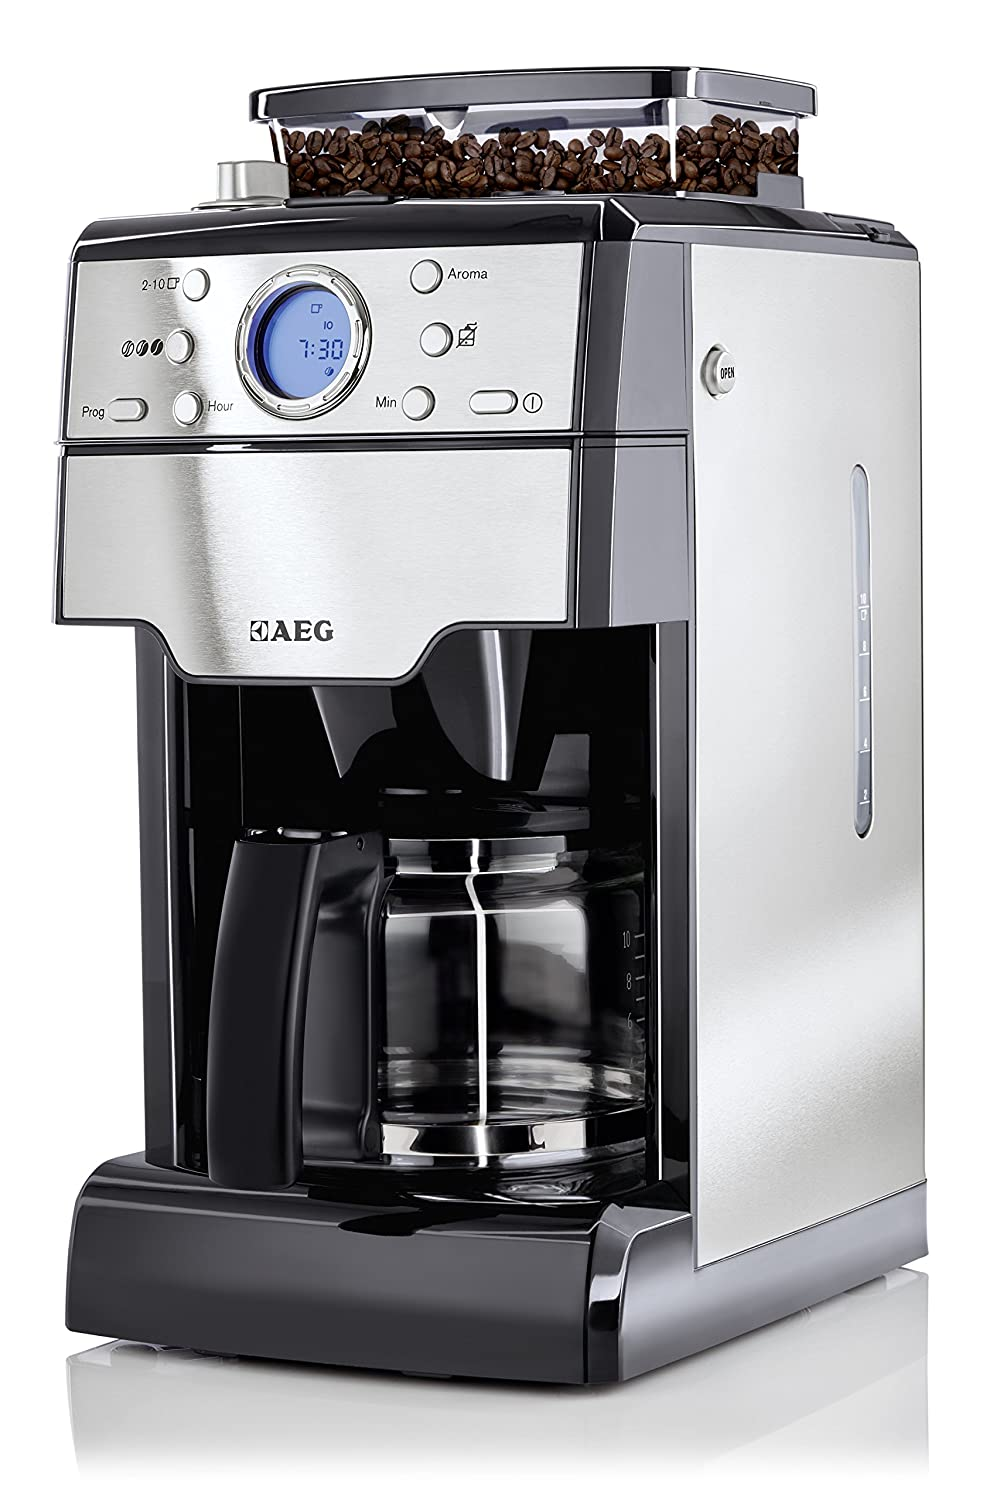 Aeg Kam300 Coffee Machine 1000 W With Built In Grinder Stainless Steel